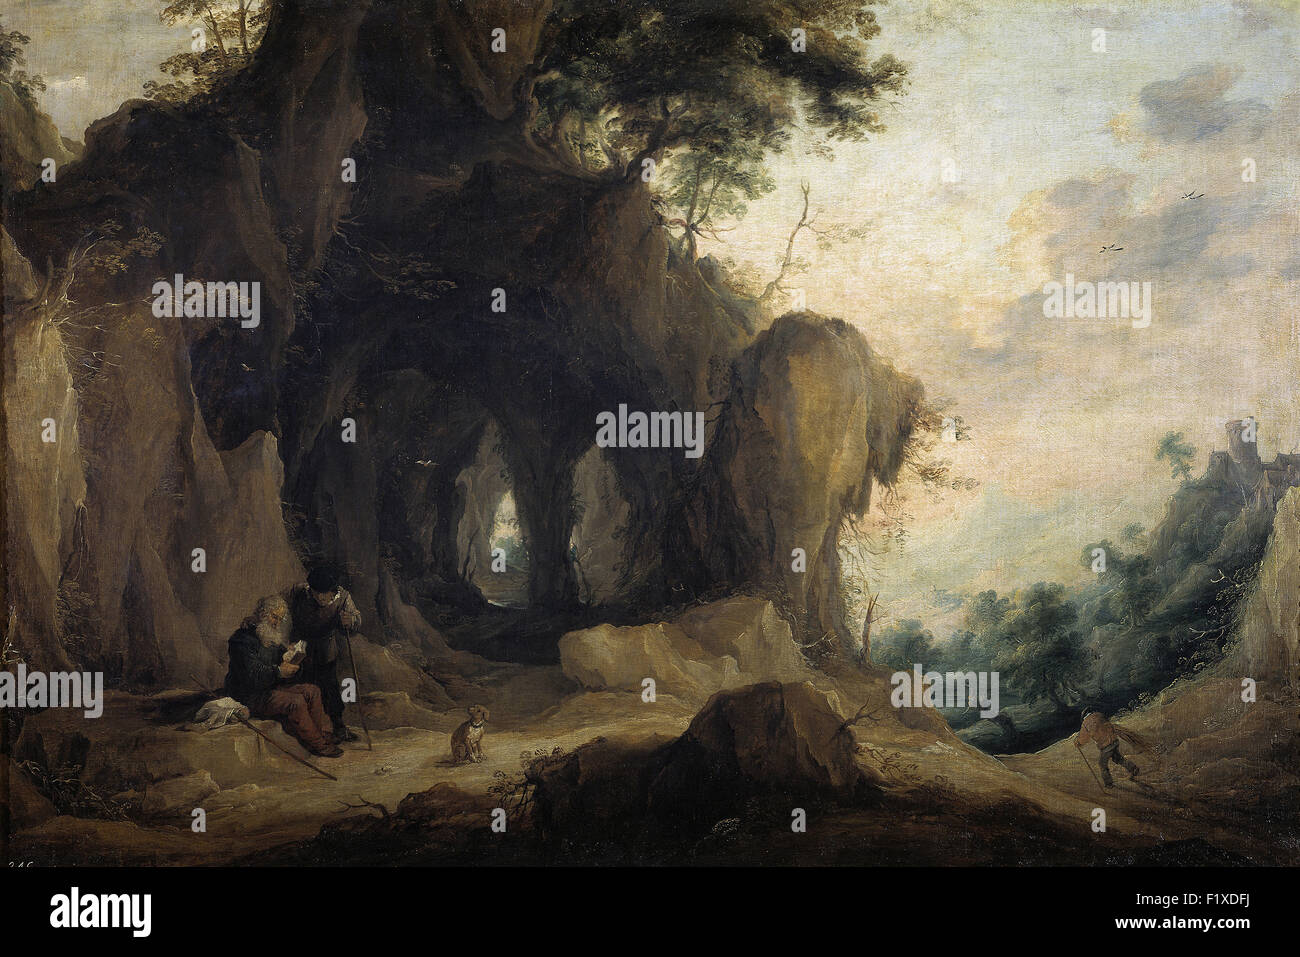 David Teniers the Younger - Landscape with a Hermit - Stock Image